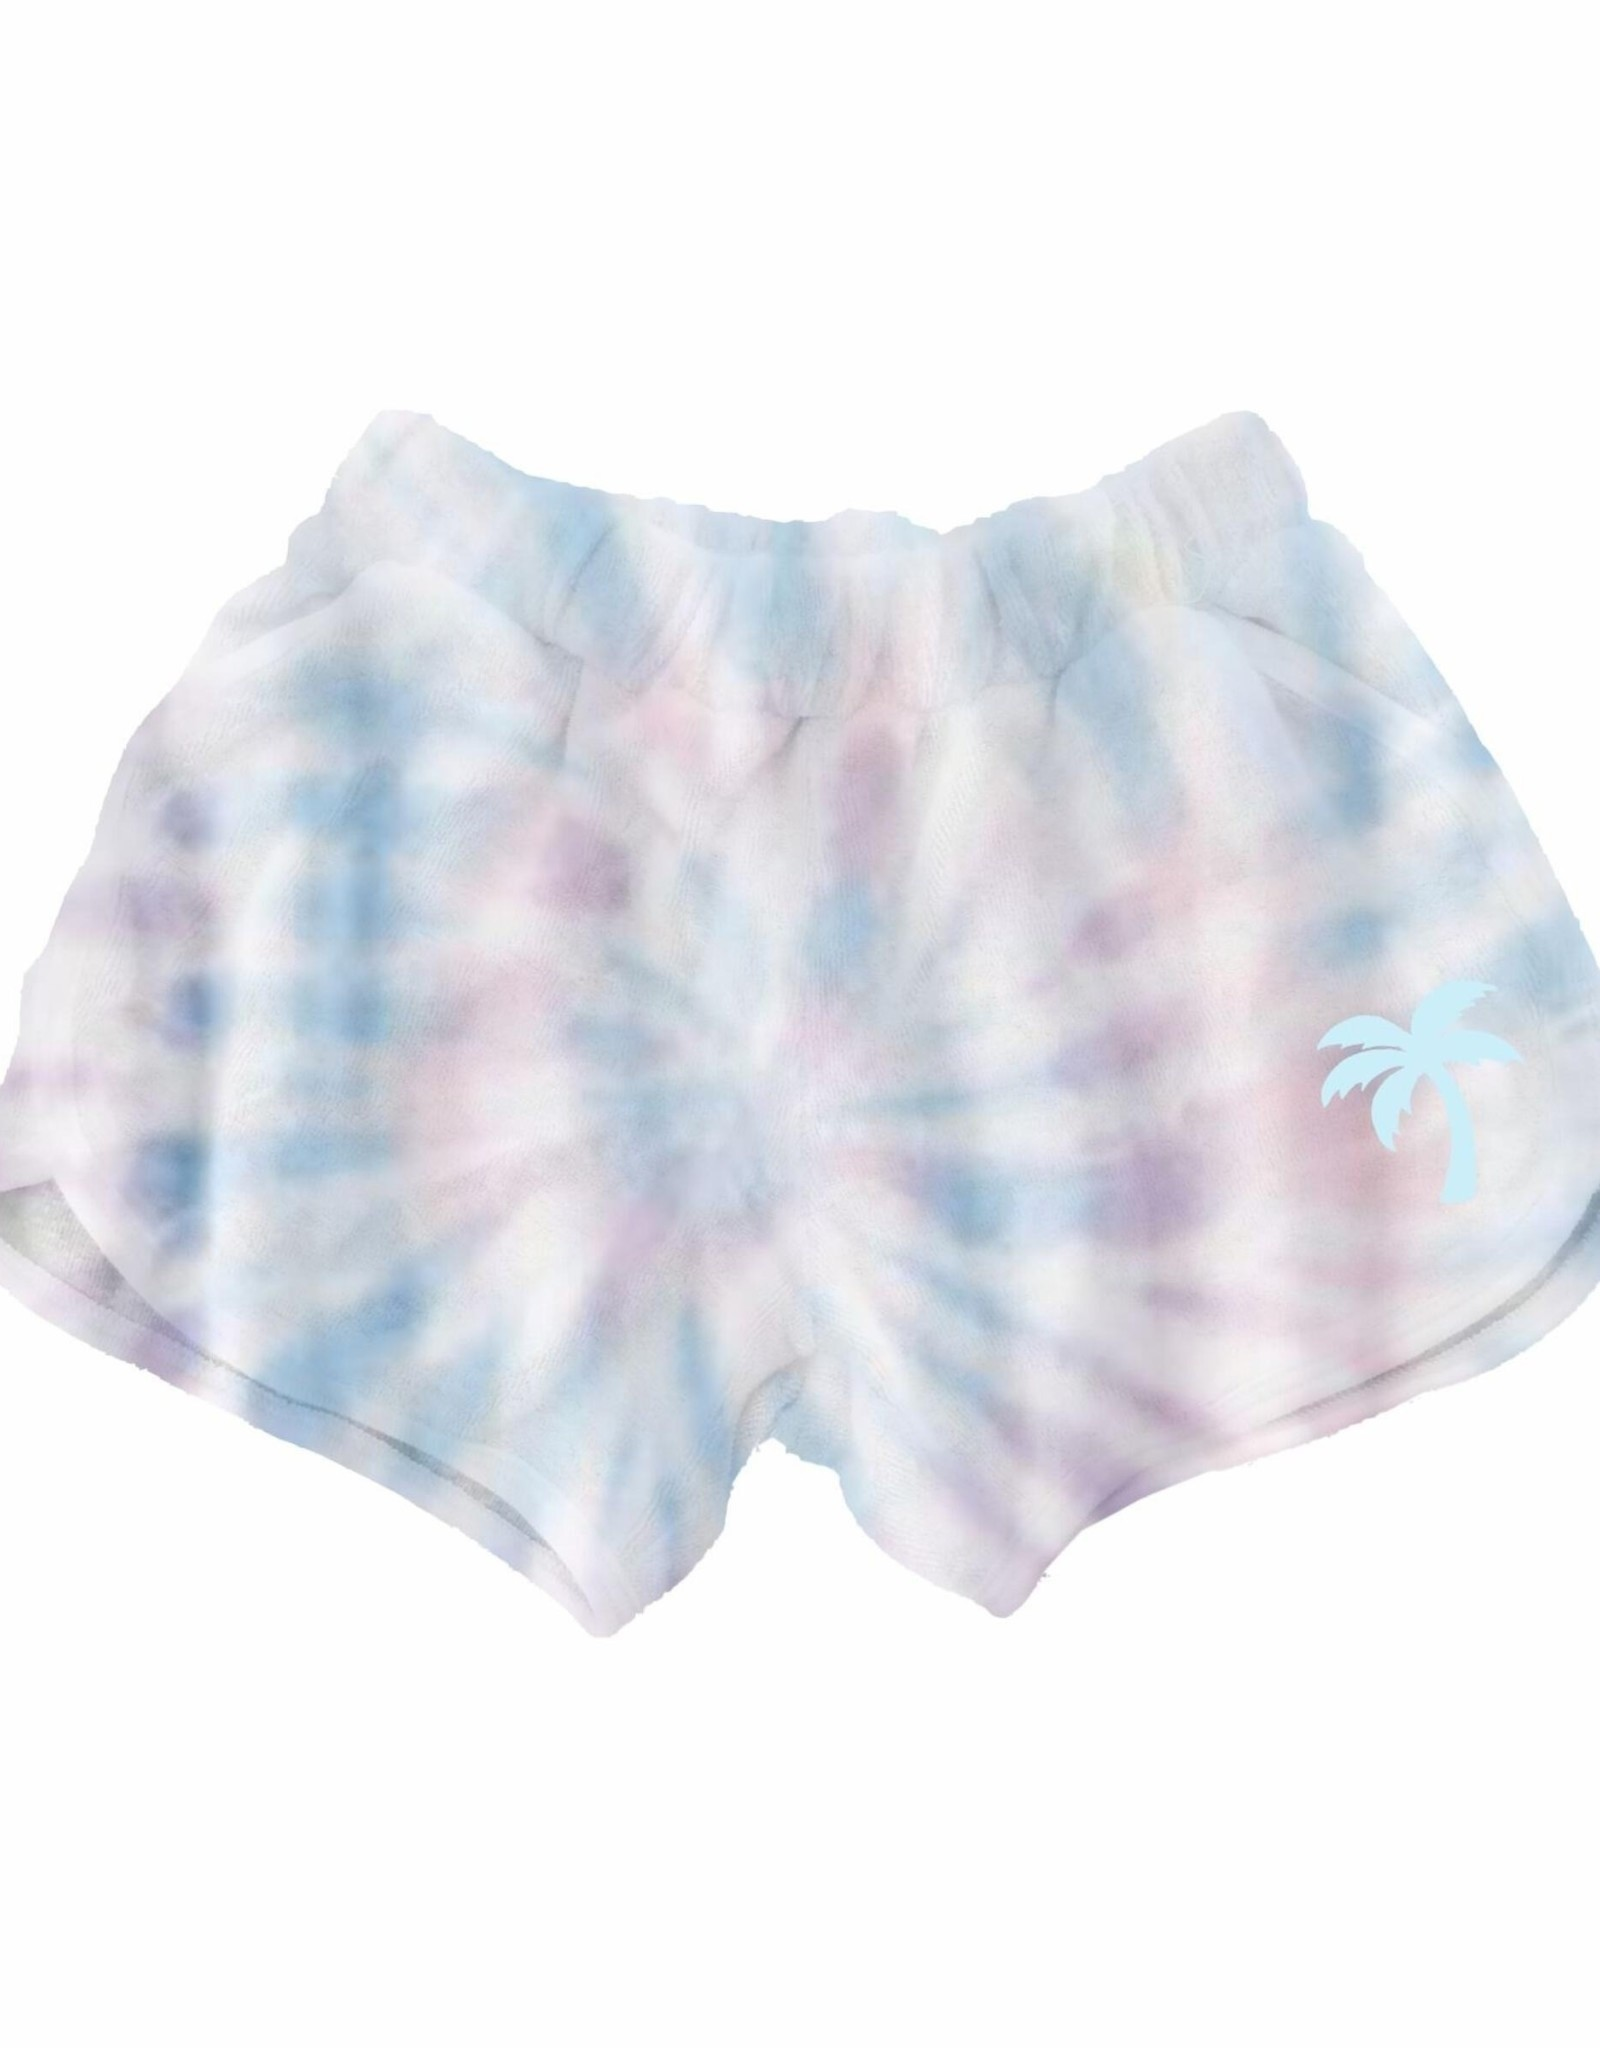 Tiny Whales sunset tie dye shorts